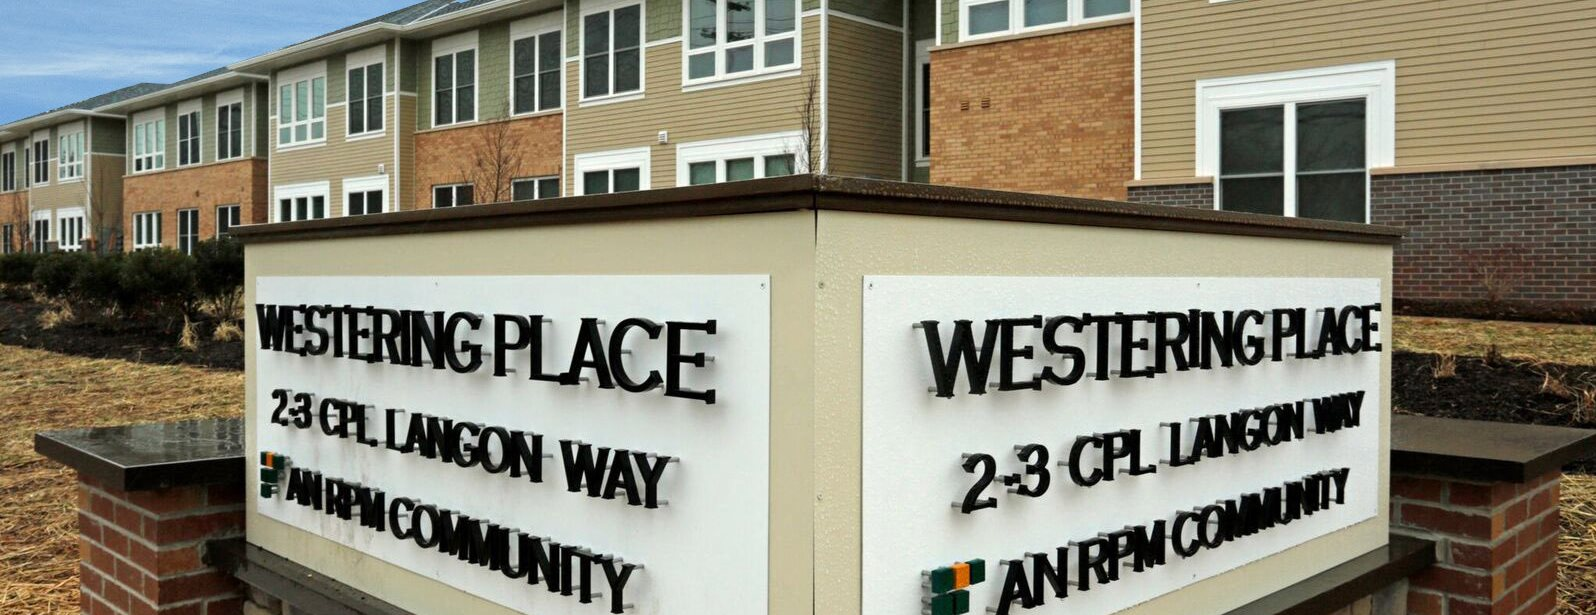 Westering Place | Apartments in Hillsborough, NJ